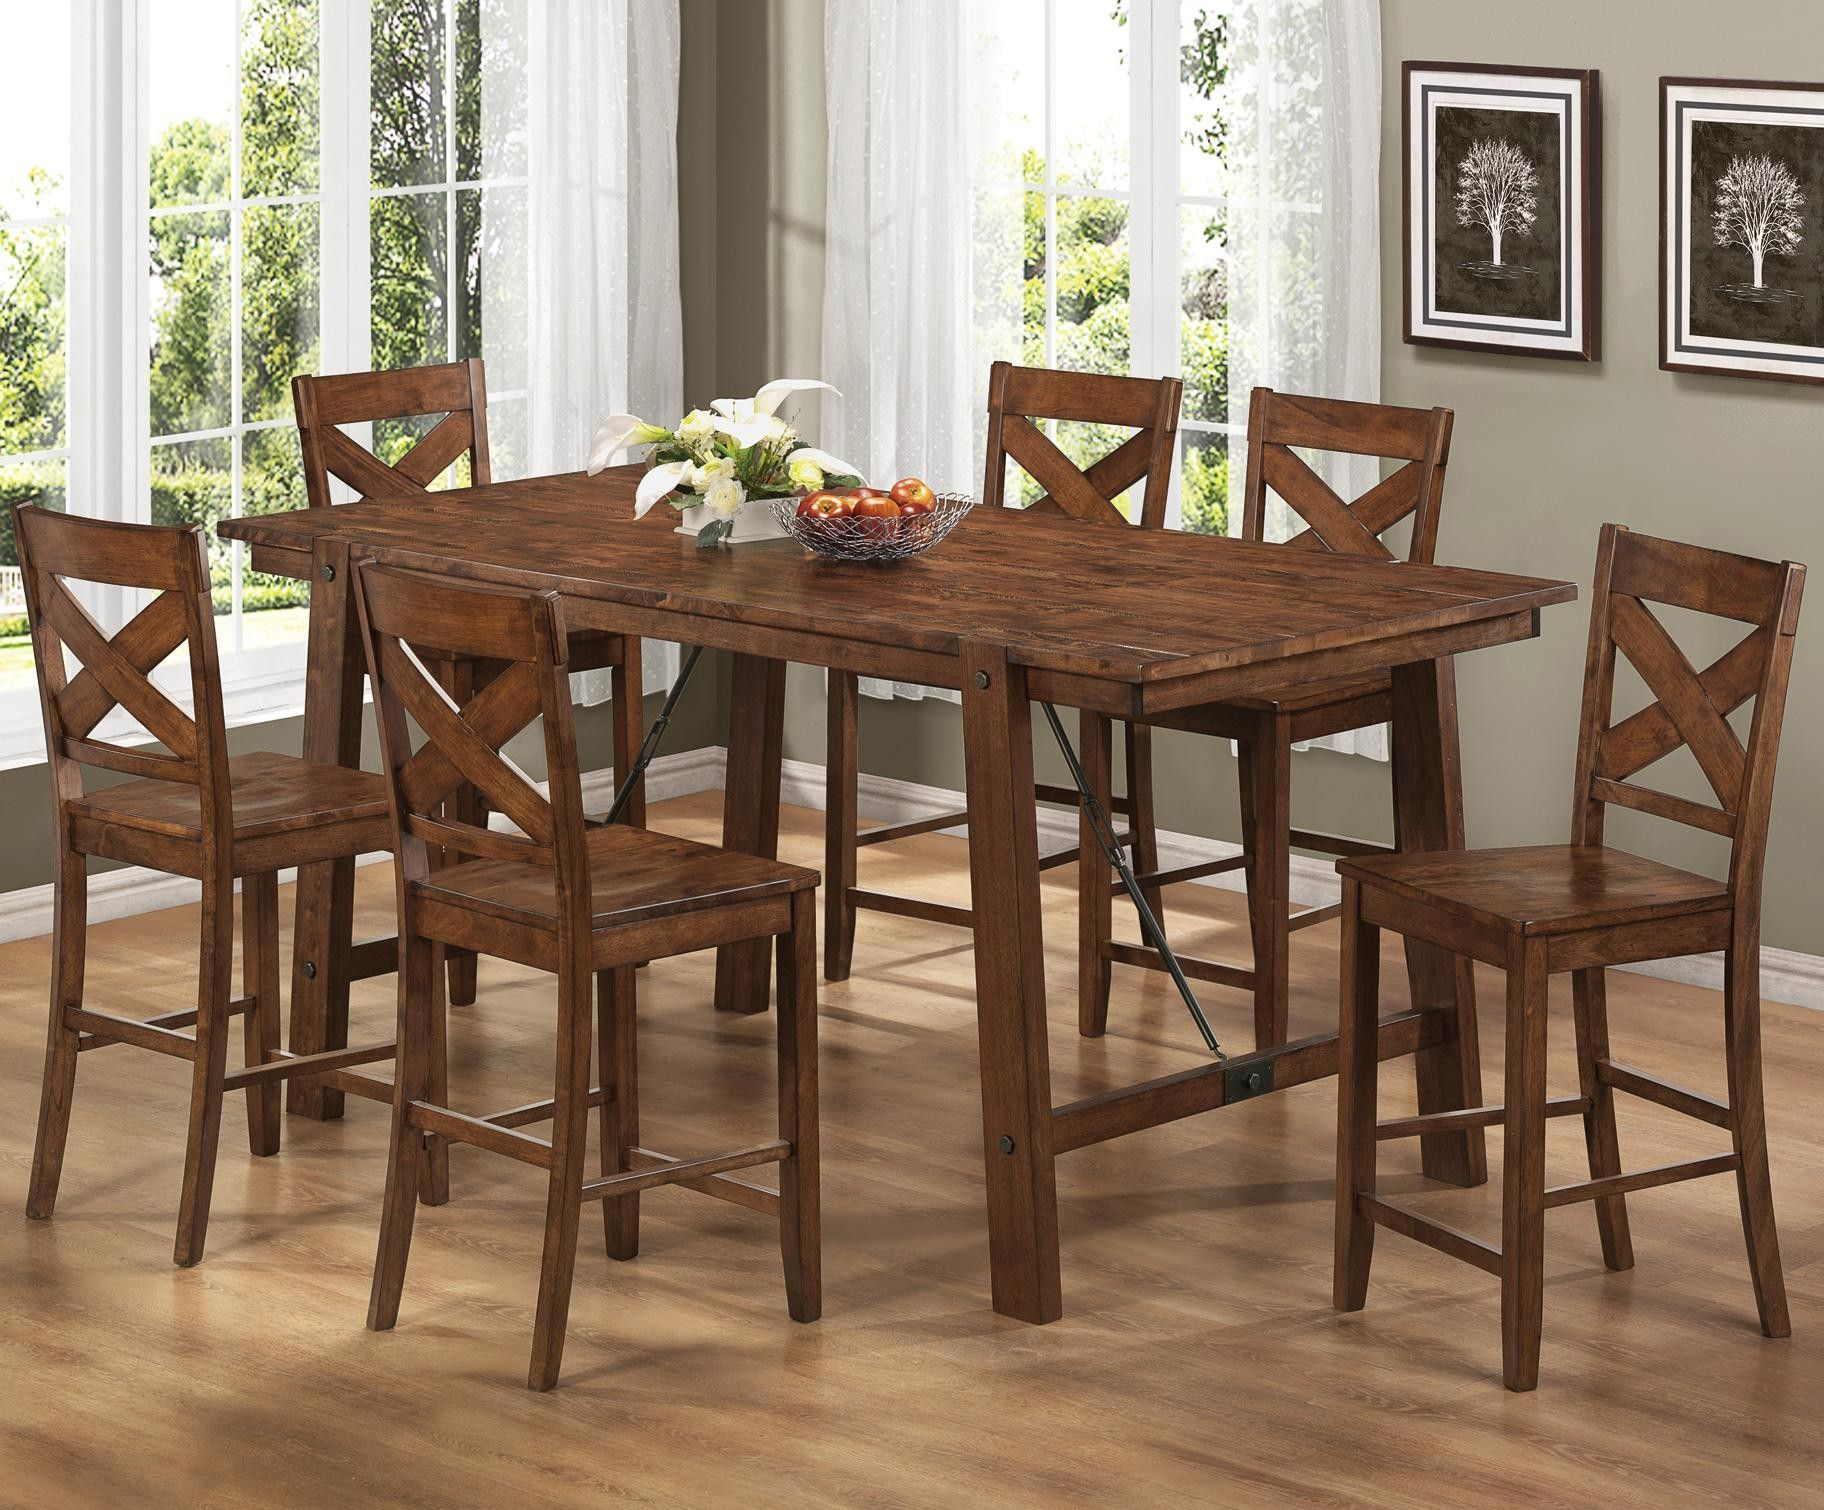 Wonderful Dining Room Sets Counter Height Table, Set Dining Set With 6 . Part 4